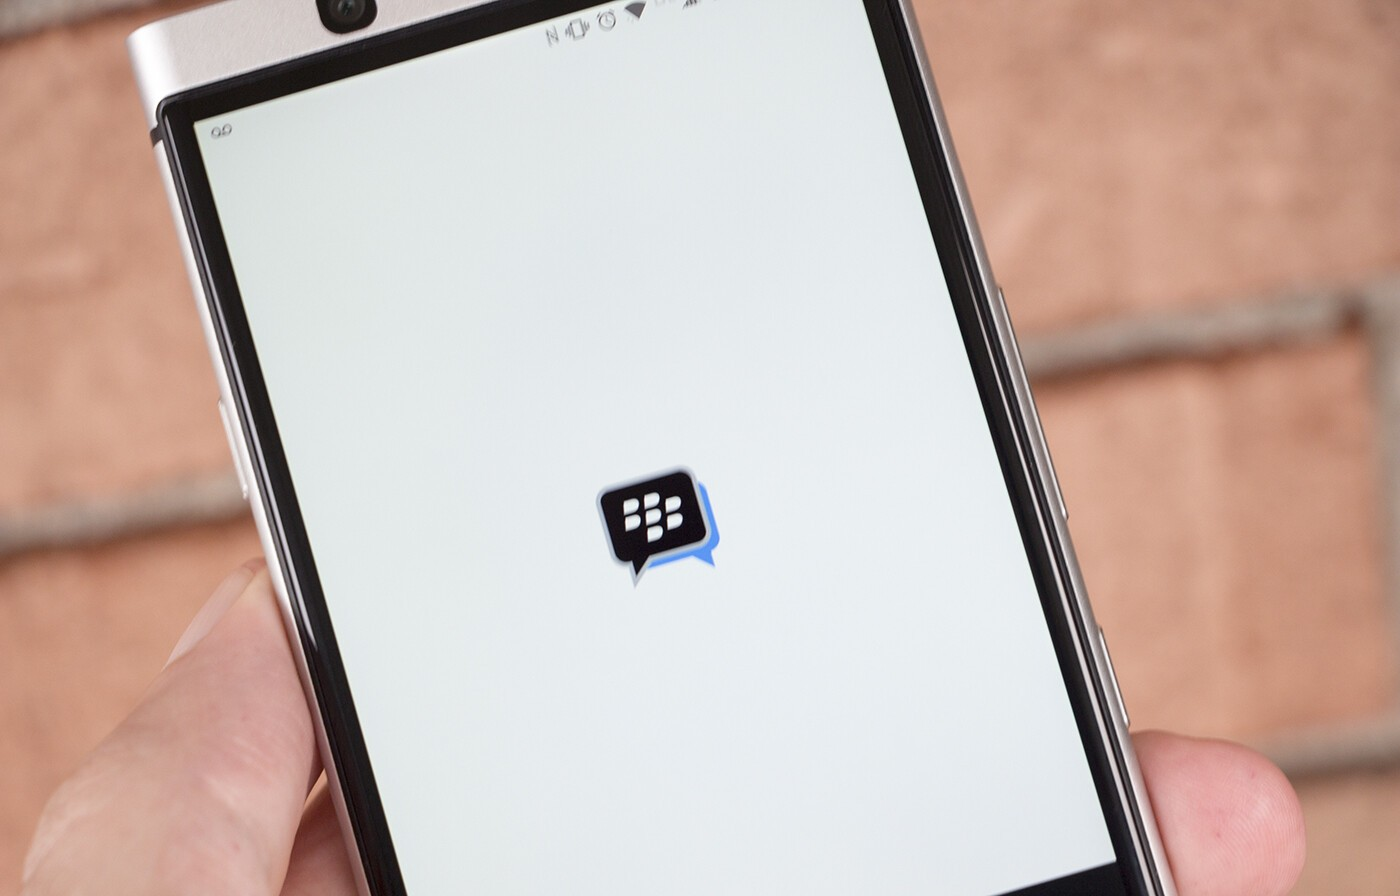 How To Export Blackberry Contacts